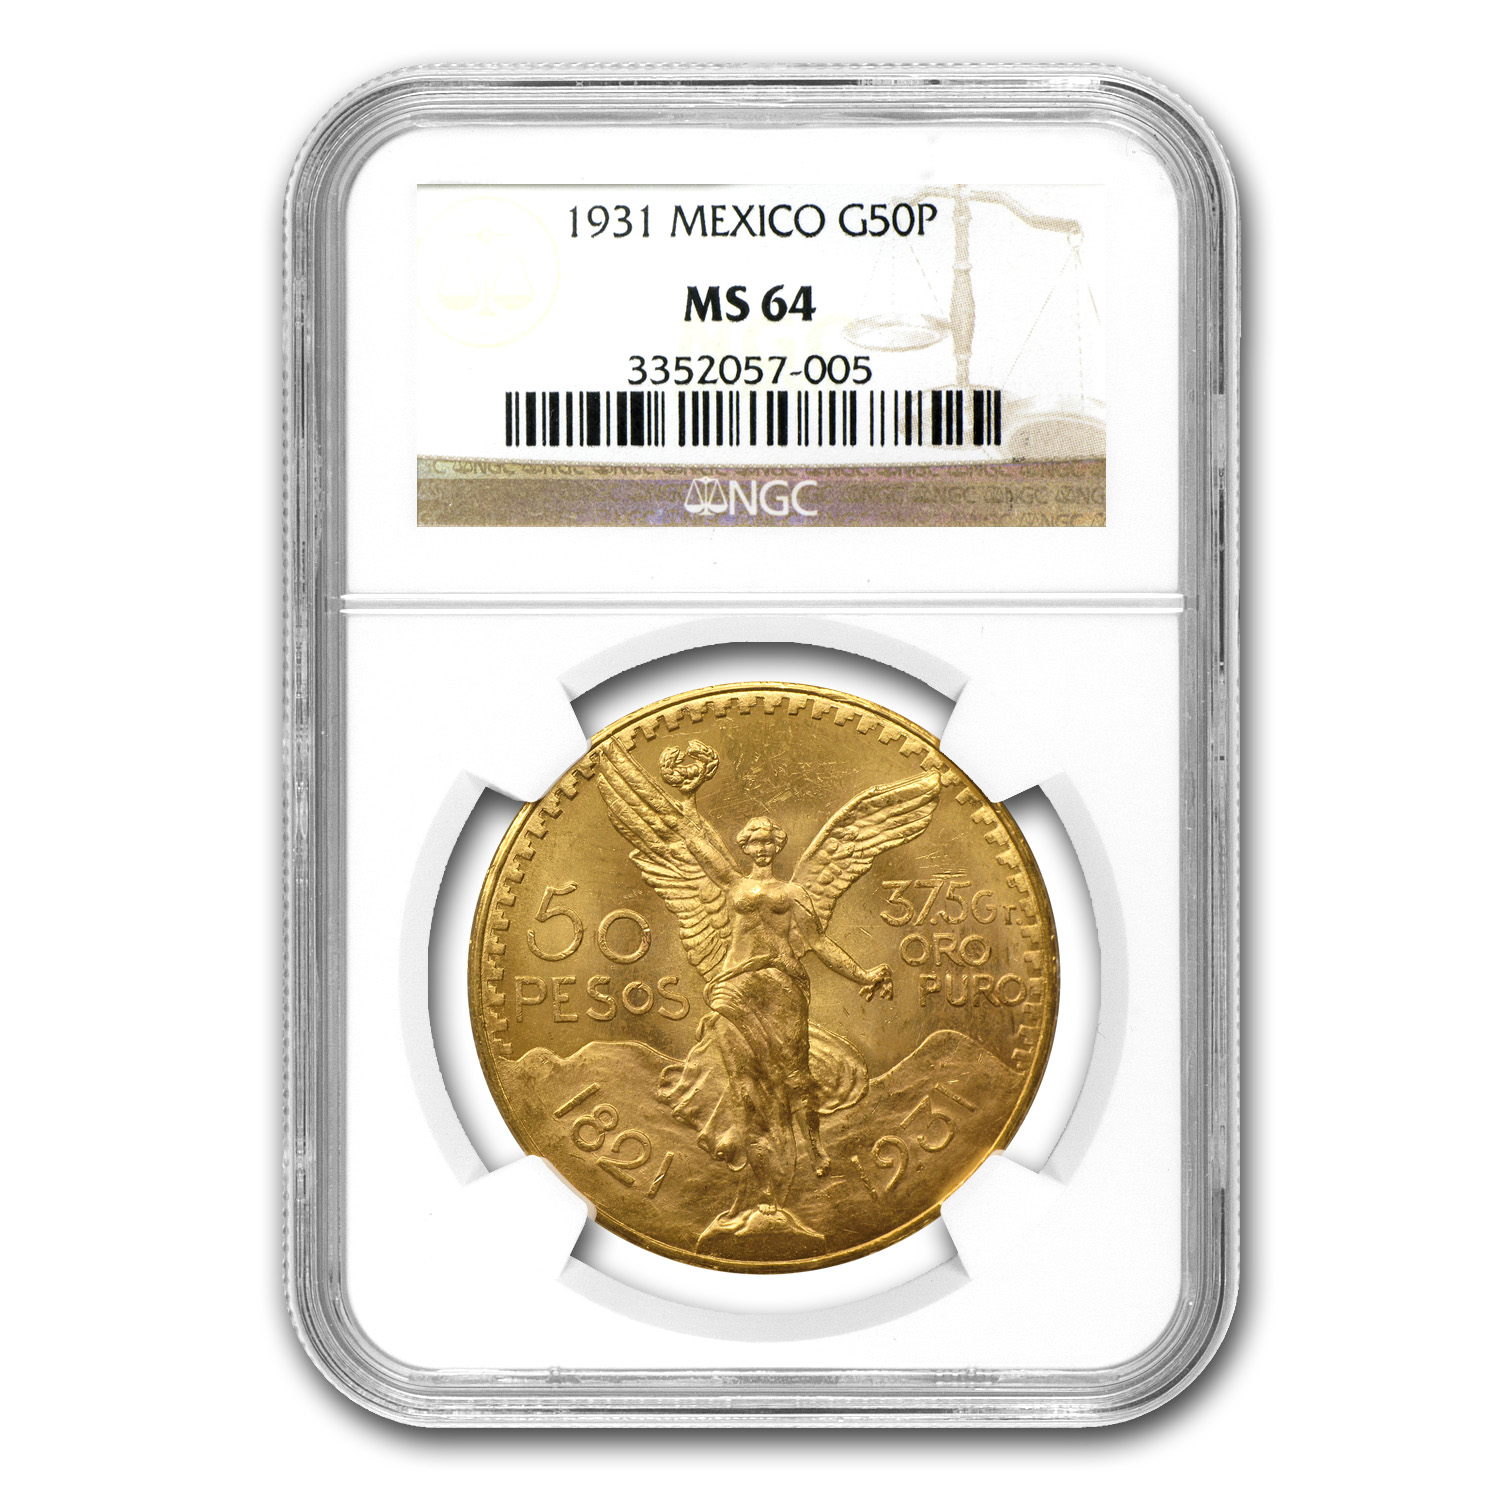 1931 Mexico Gold 50 Pesos MS-64 NGC